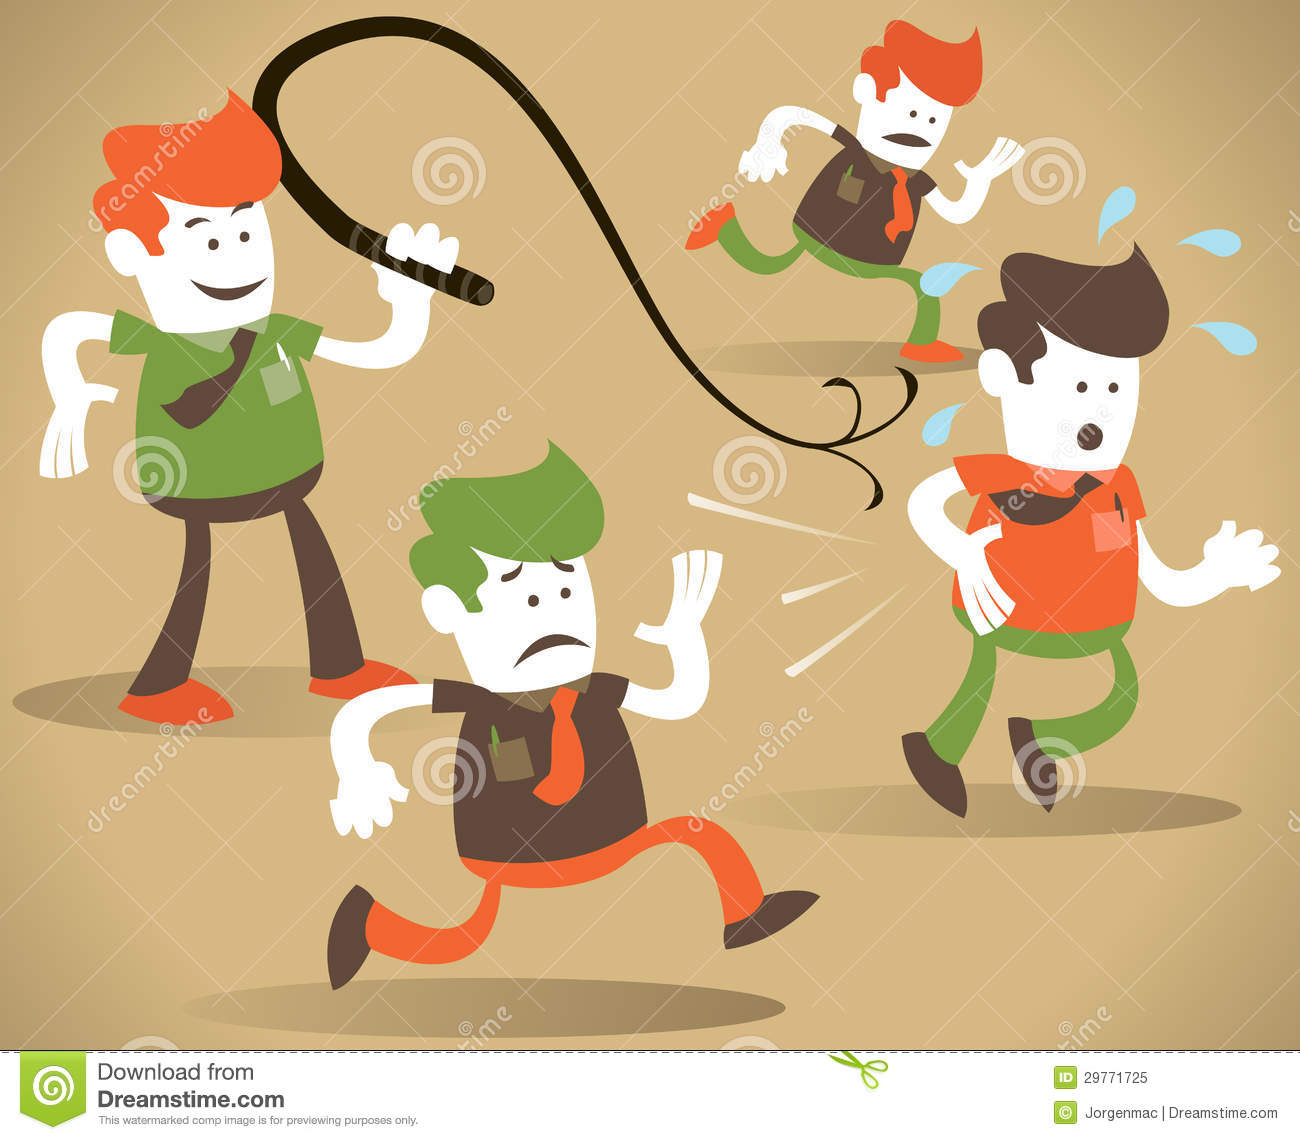 corporate guy cracks the whip stock vector illustration of vector